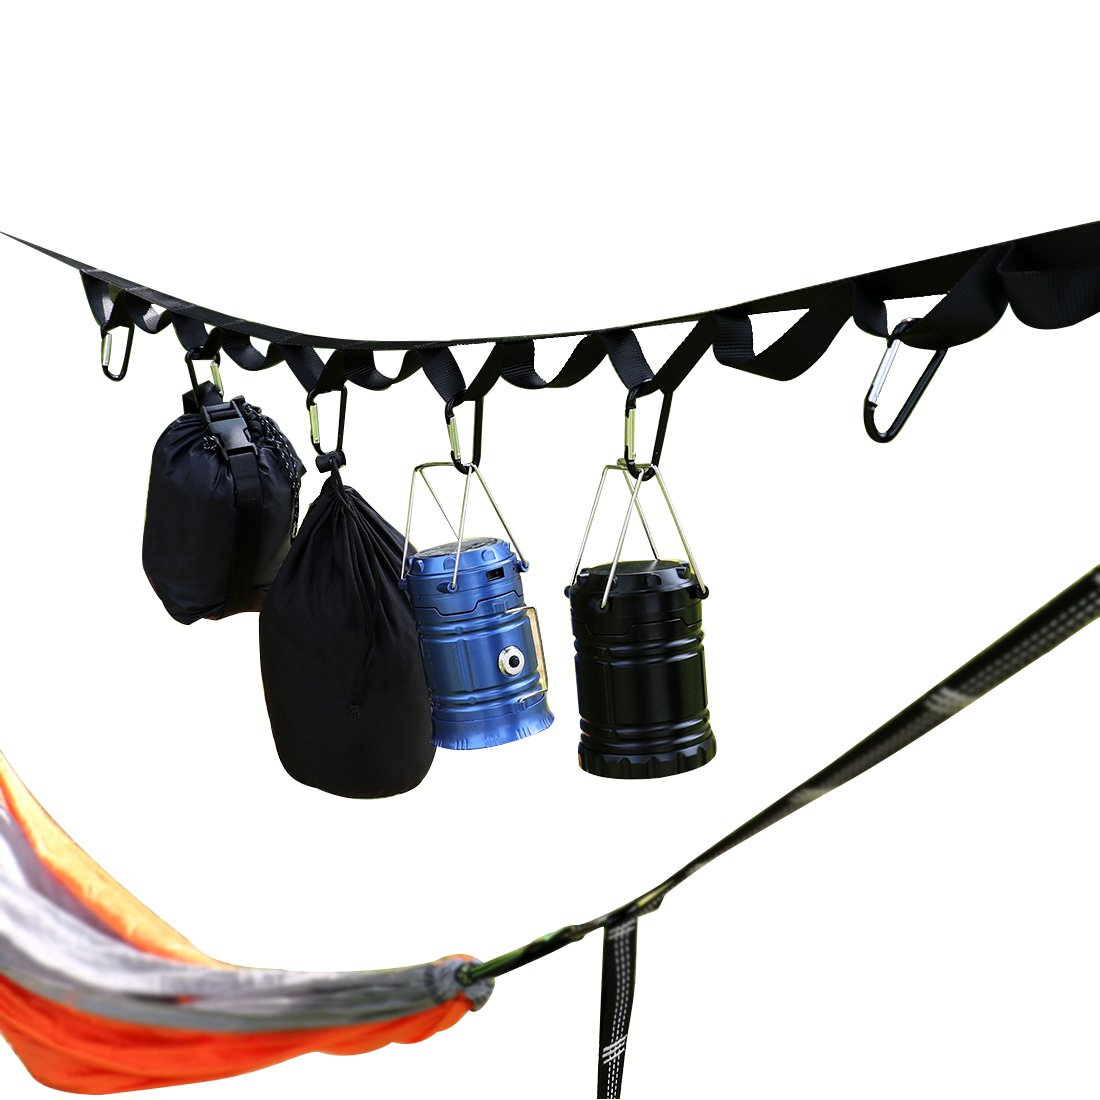 LAMURO Outdoor Camping Lanyard with Hook | Campsite or Garden Supplies Storage Strap with Hooks | Hang Your Camping Gear from a Tree | Vertical or Horizontal Organizer